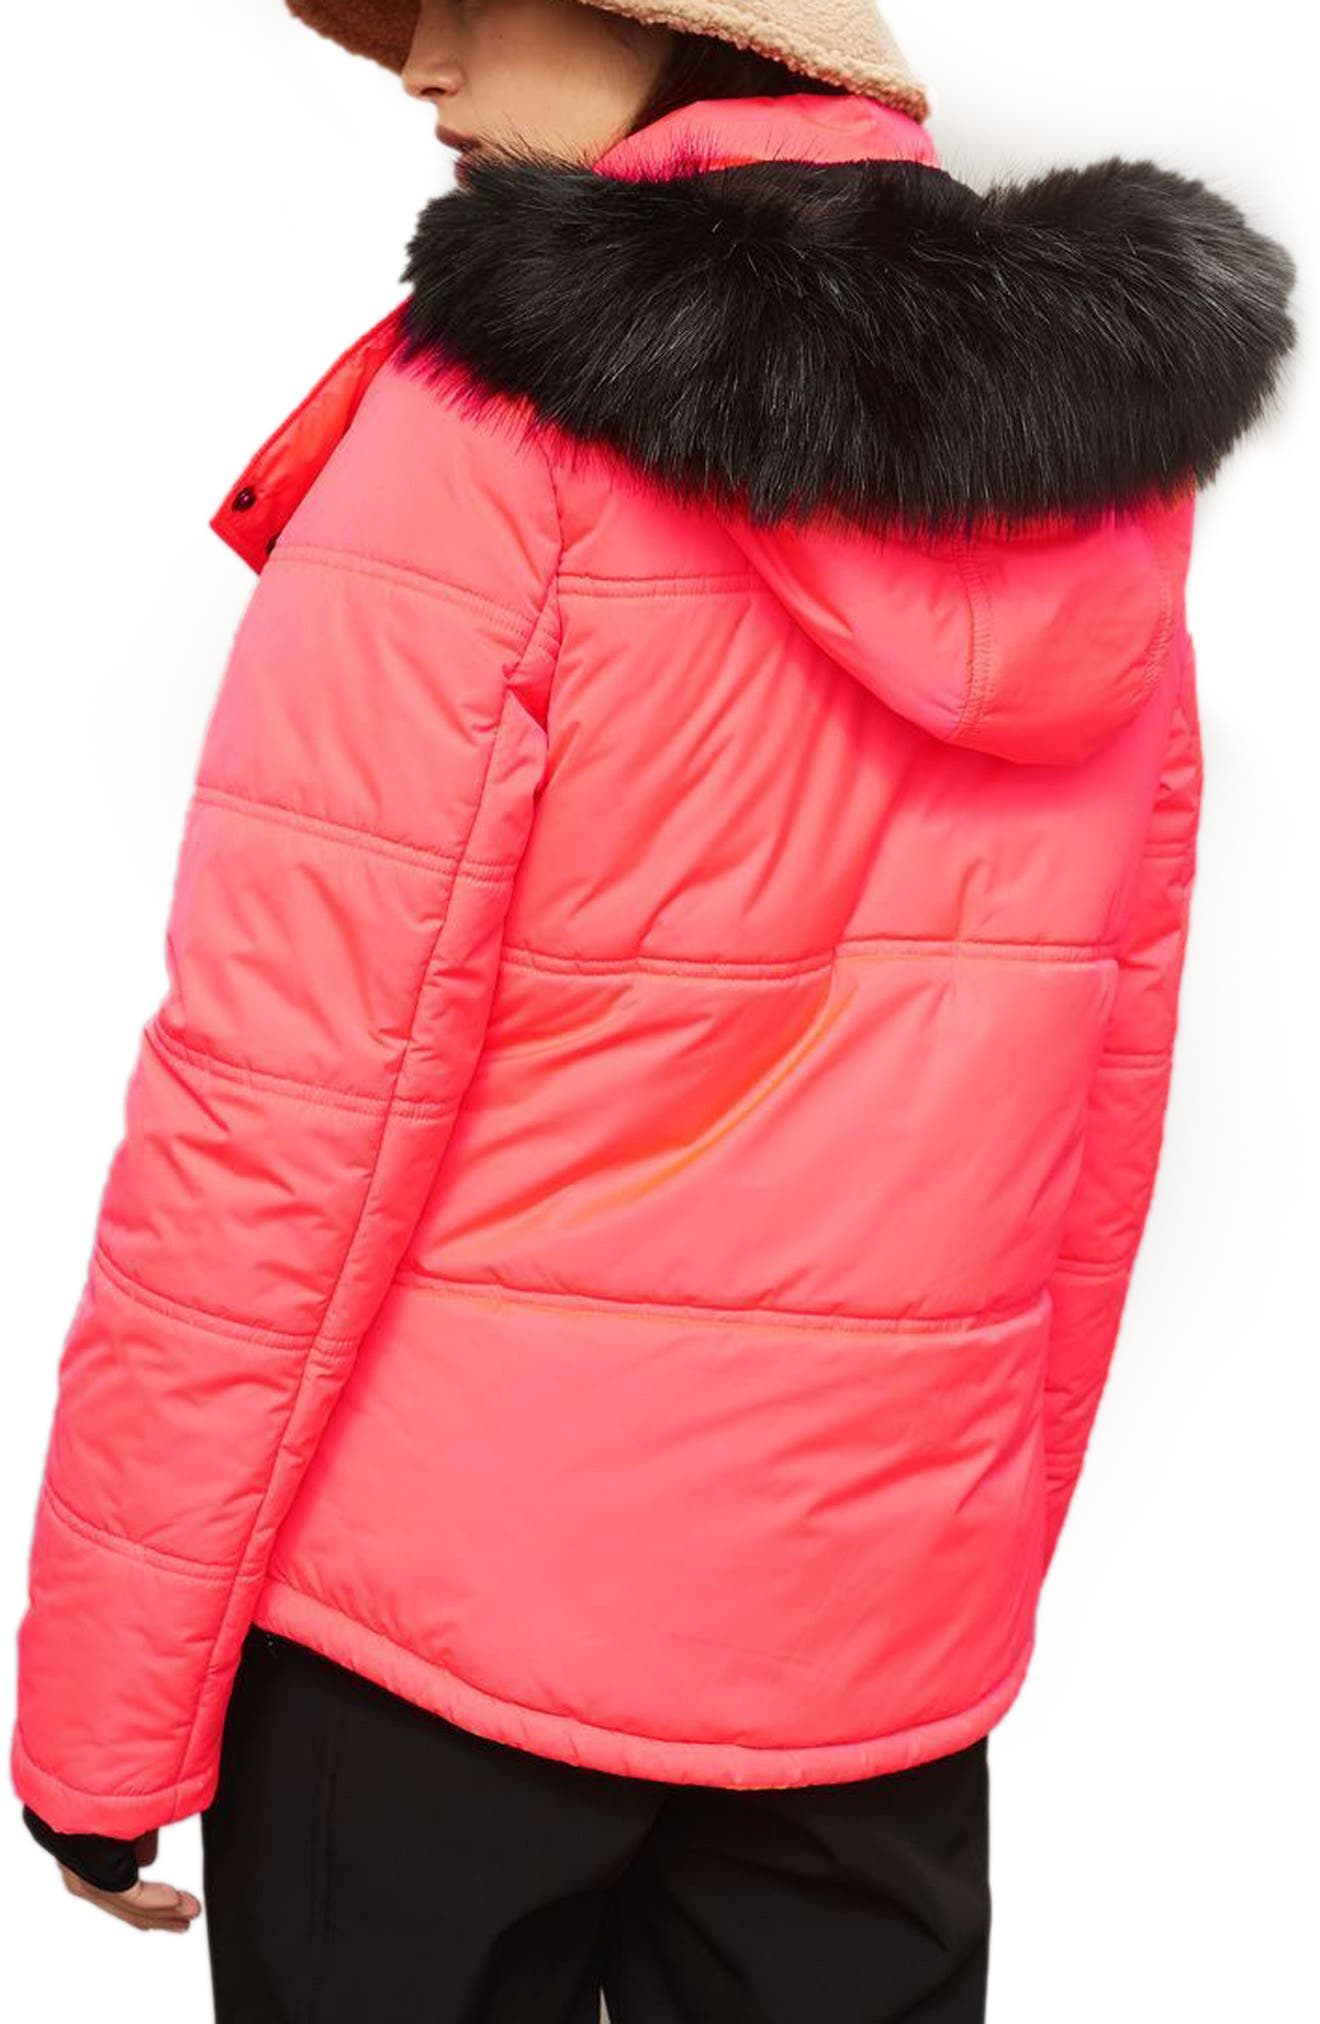 SNO Rio Faux Fur Hood Neon Puffer Jacket,                             Alternate thumbnail 3, color,                             Pink